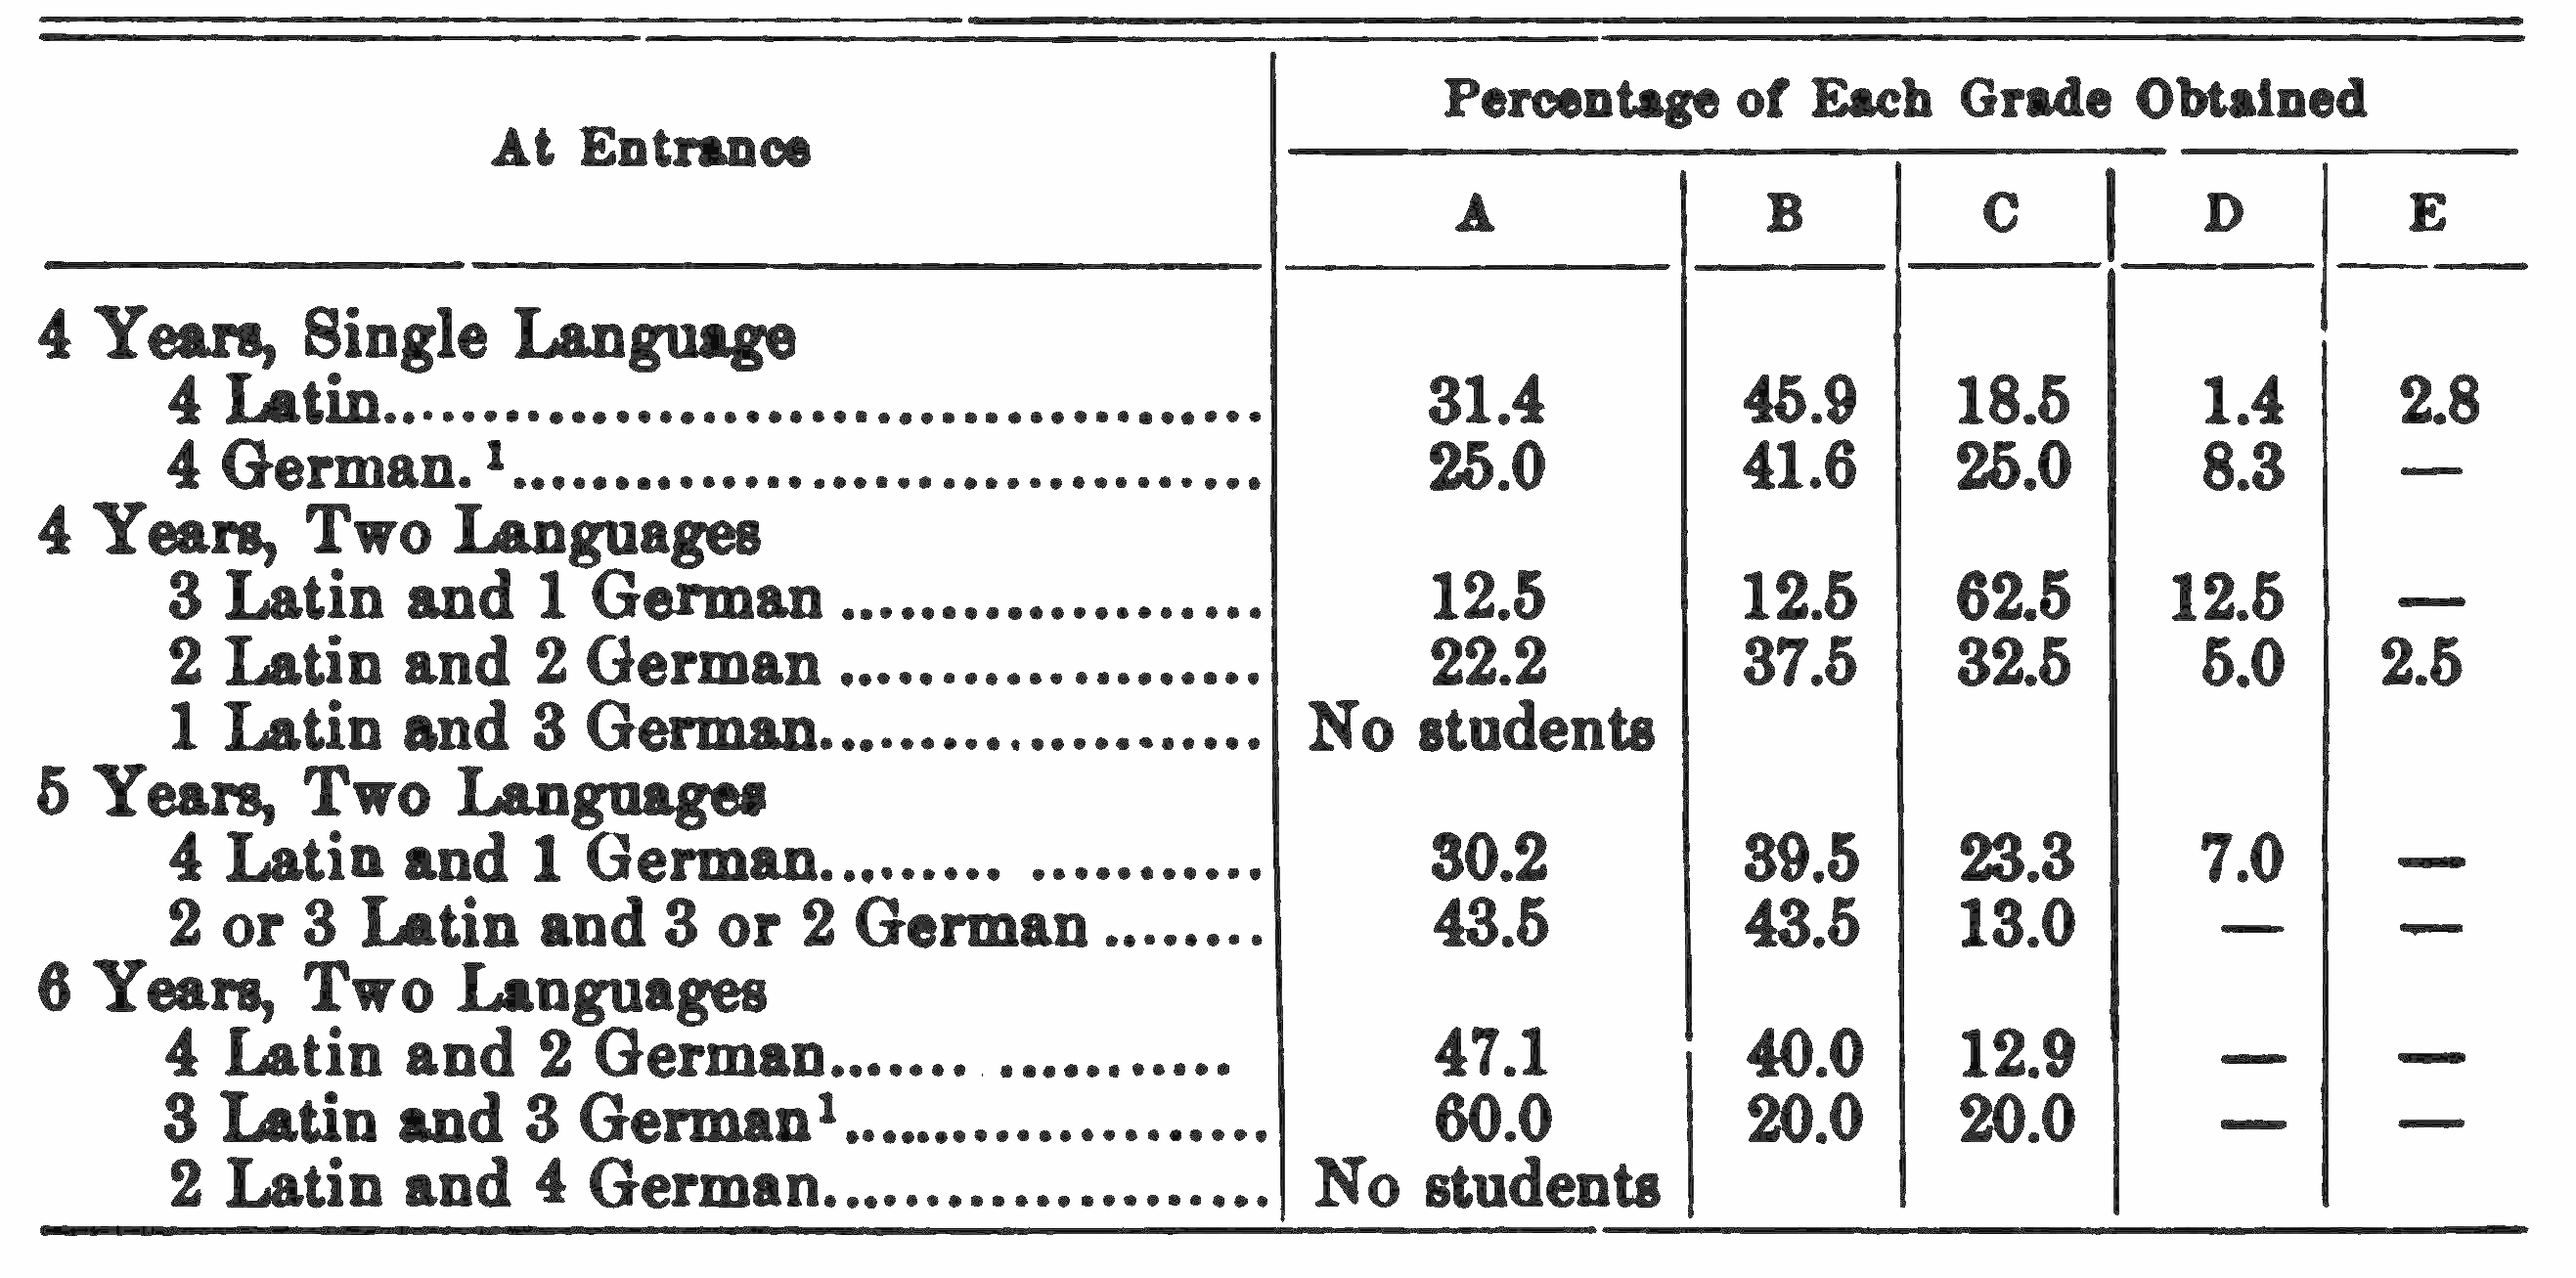 PSM V75 D398 Grades obtained in the english department 1903 to 1907 1.png